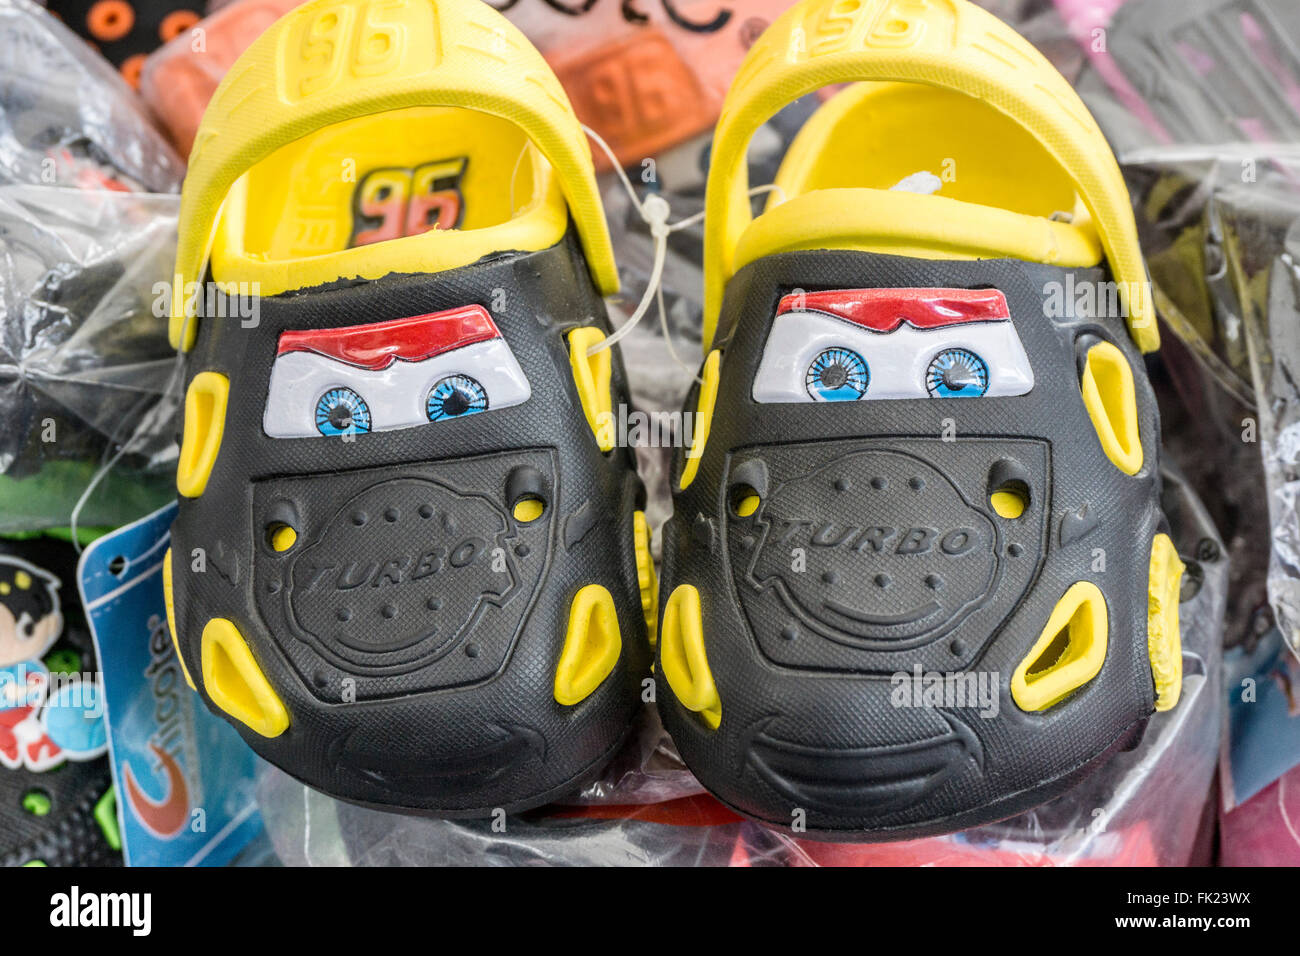 display clever novelty pair child's crocs designed to look like cars with pairs bright blue eyes staring out - Stock Image